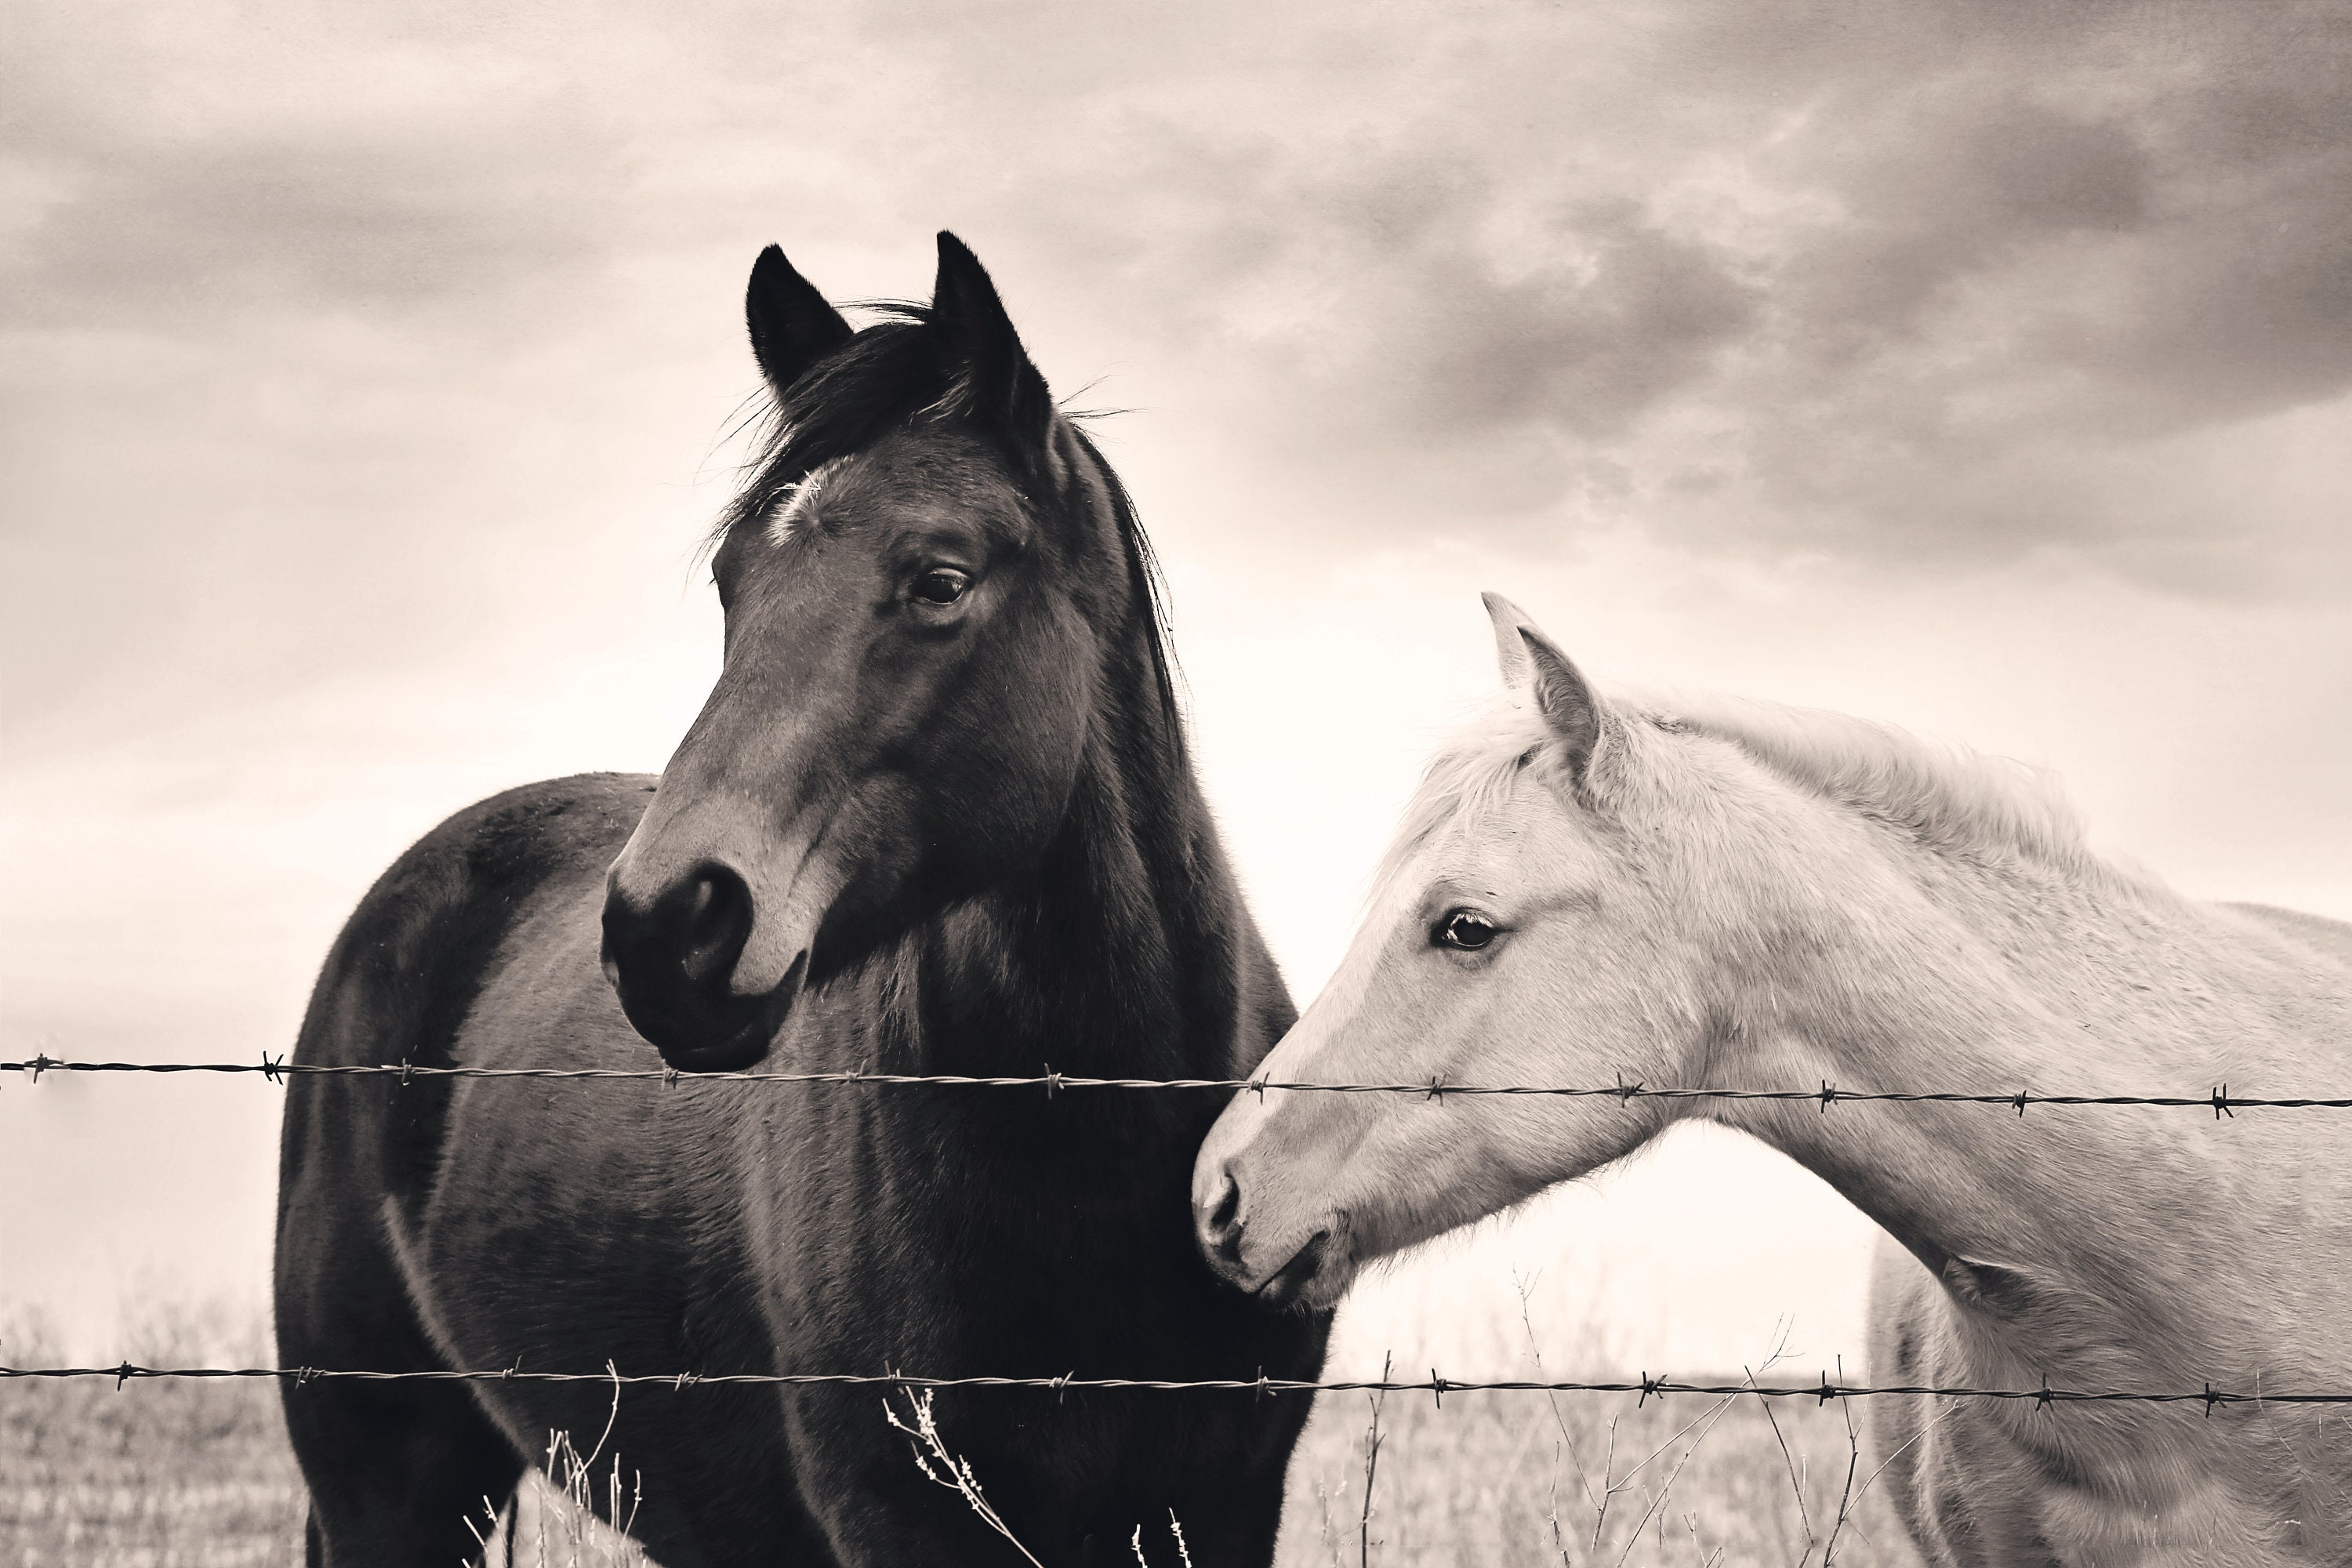 Night Day 2 Horse Photography Southwest Midwest Wall Decor Equestrian Western Black White Country Kitchen Living Room